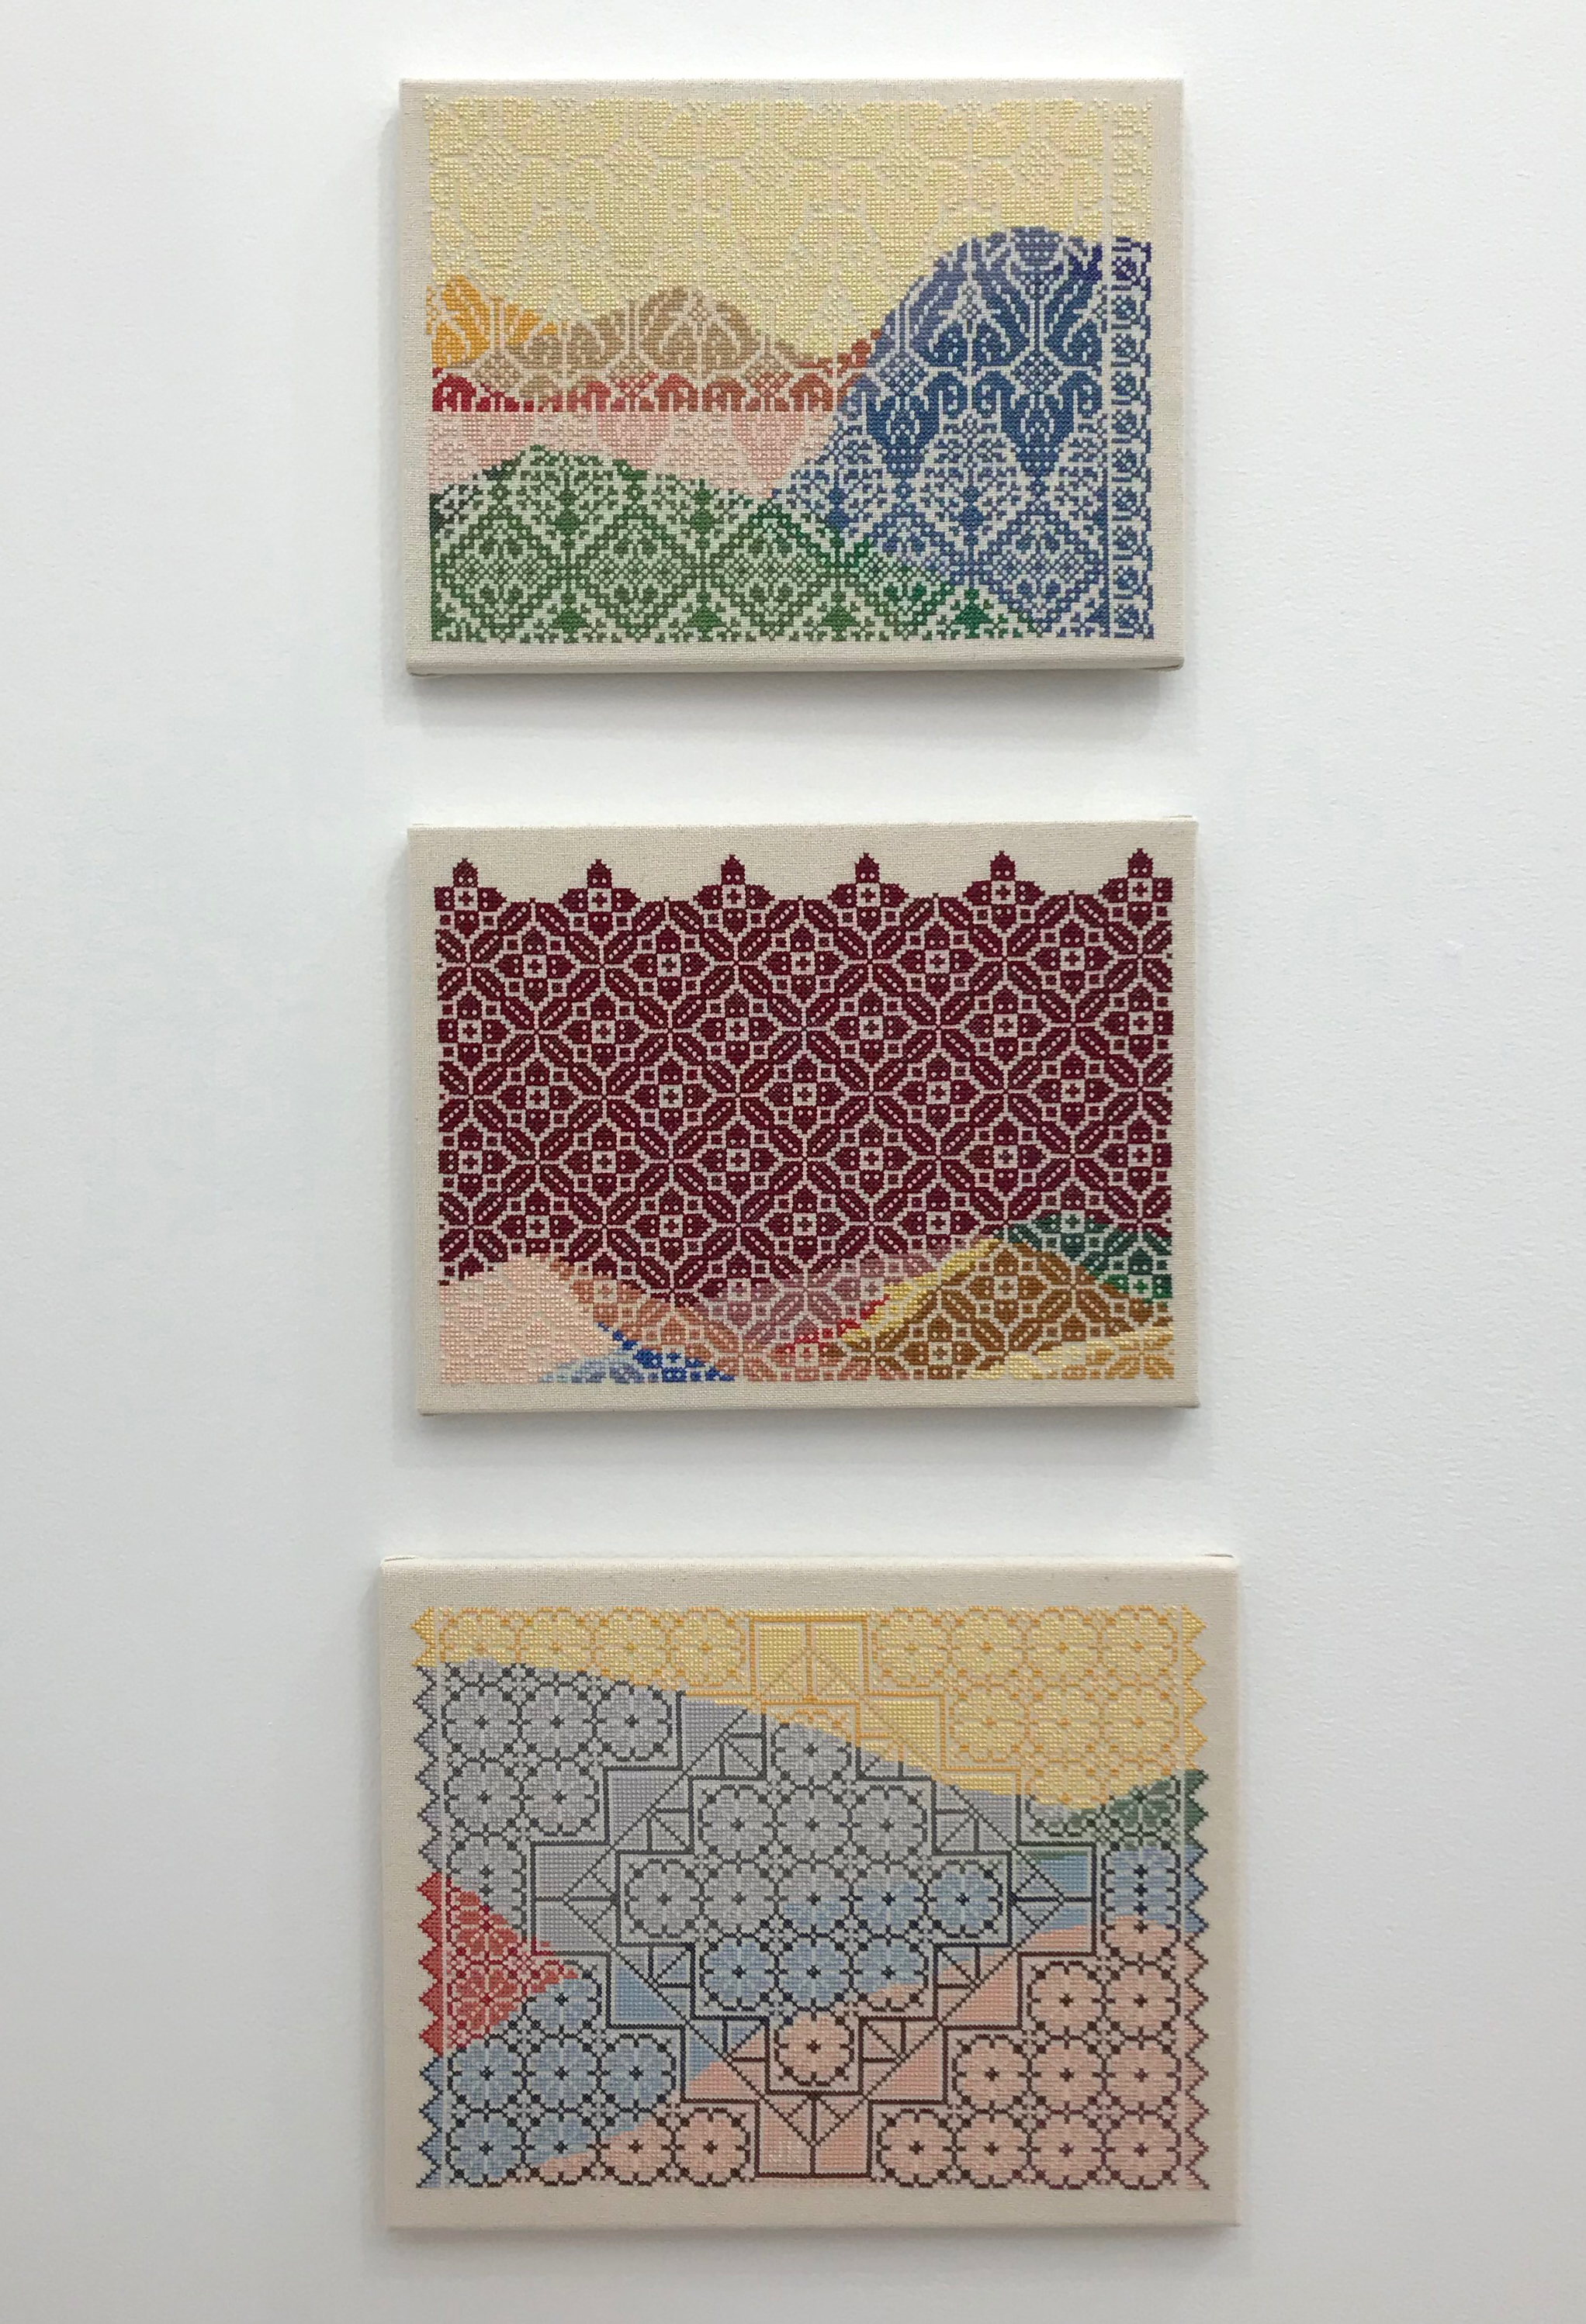 Jordan Nassar, Embroideries, 2017.